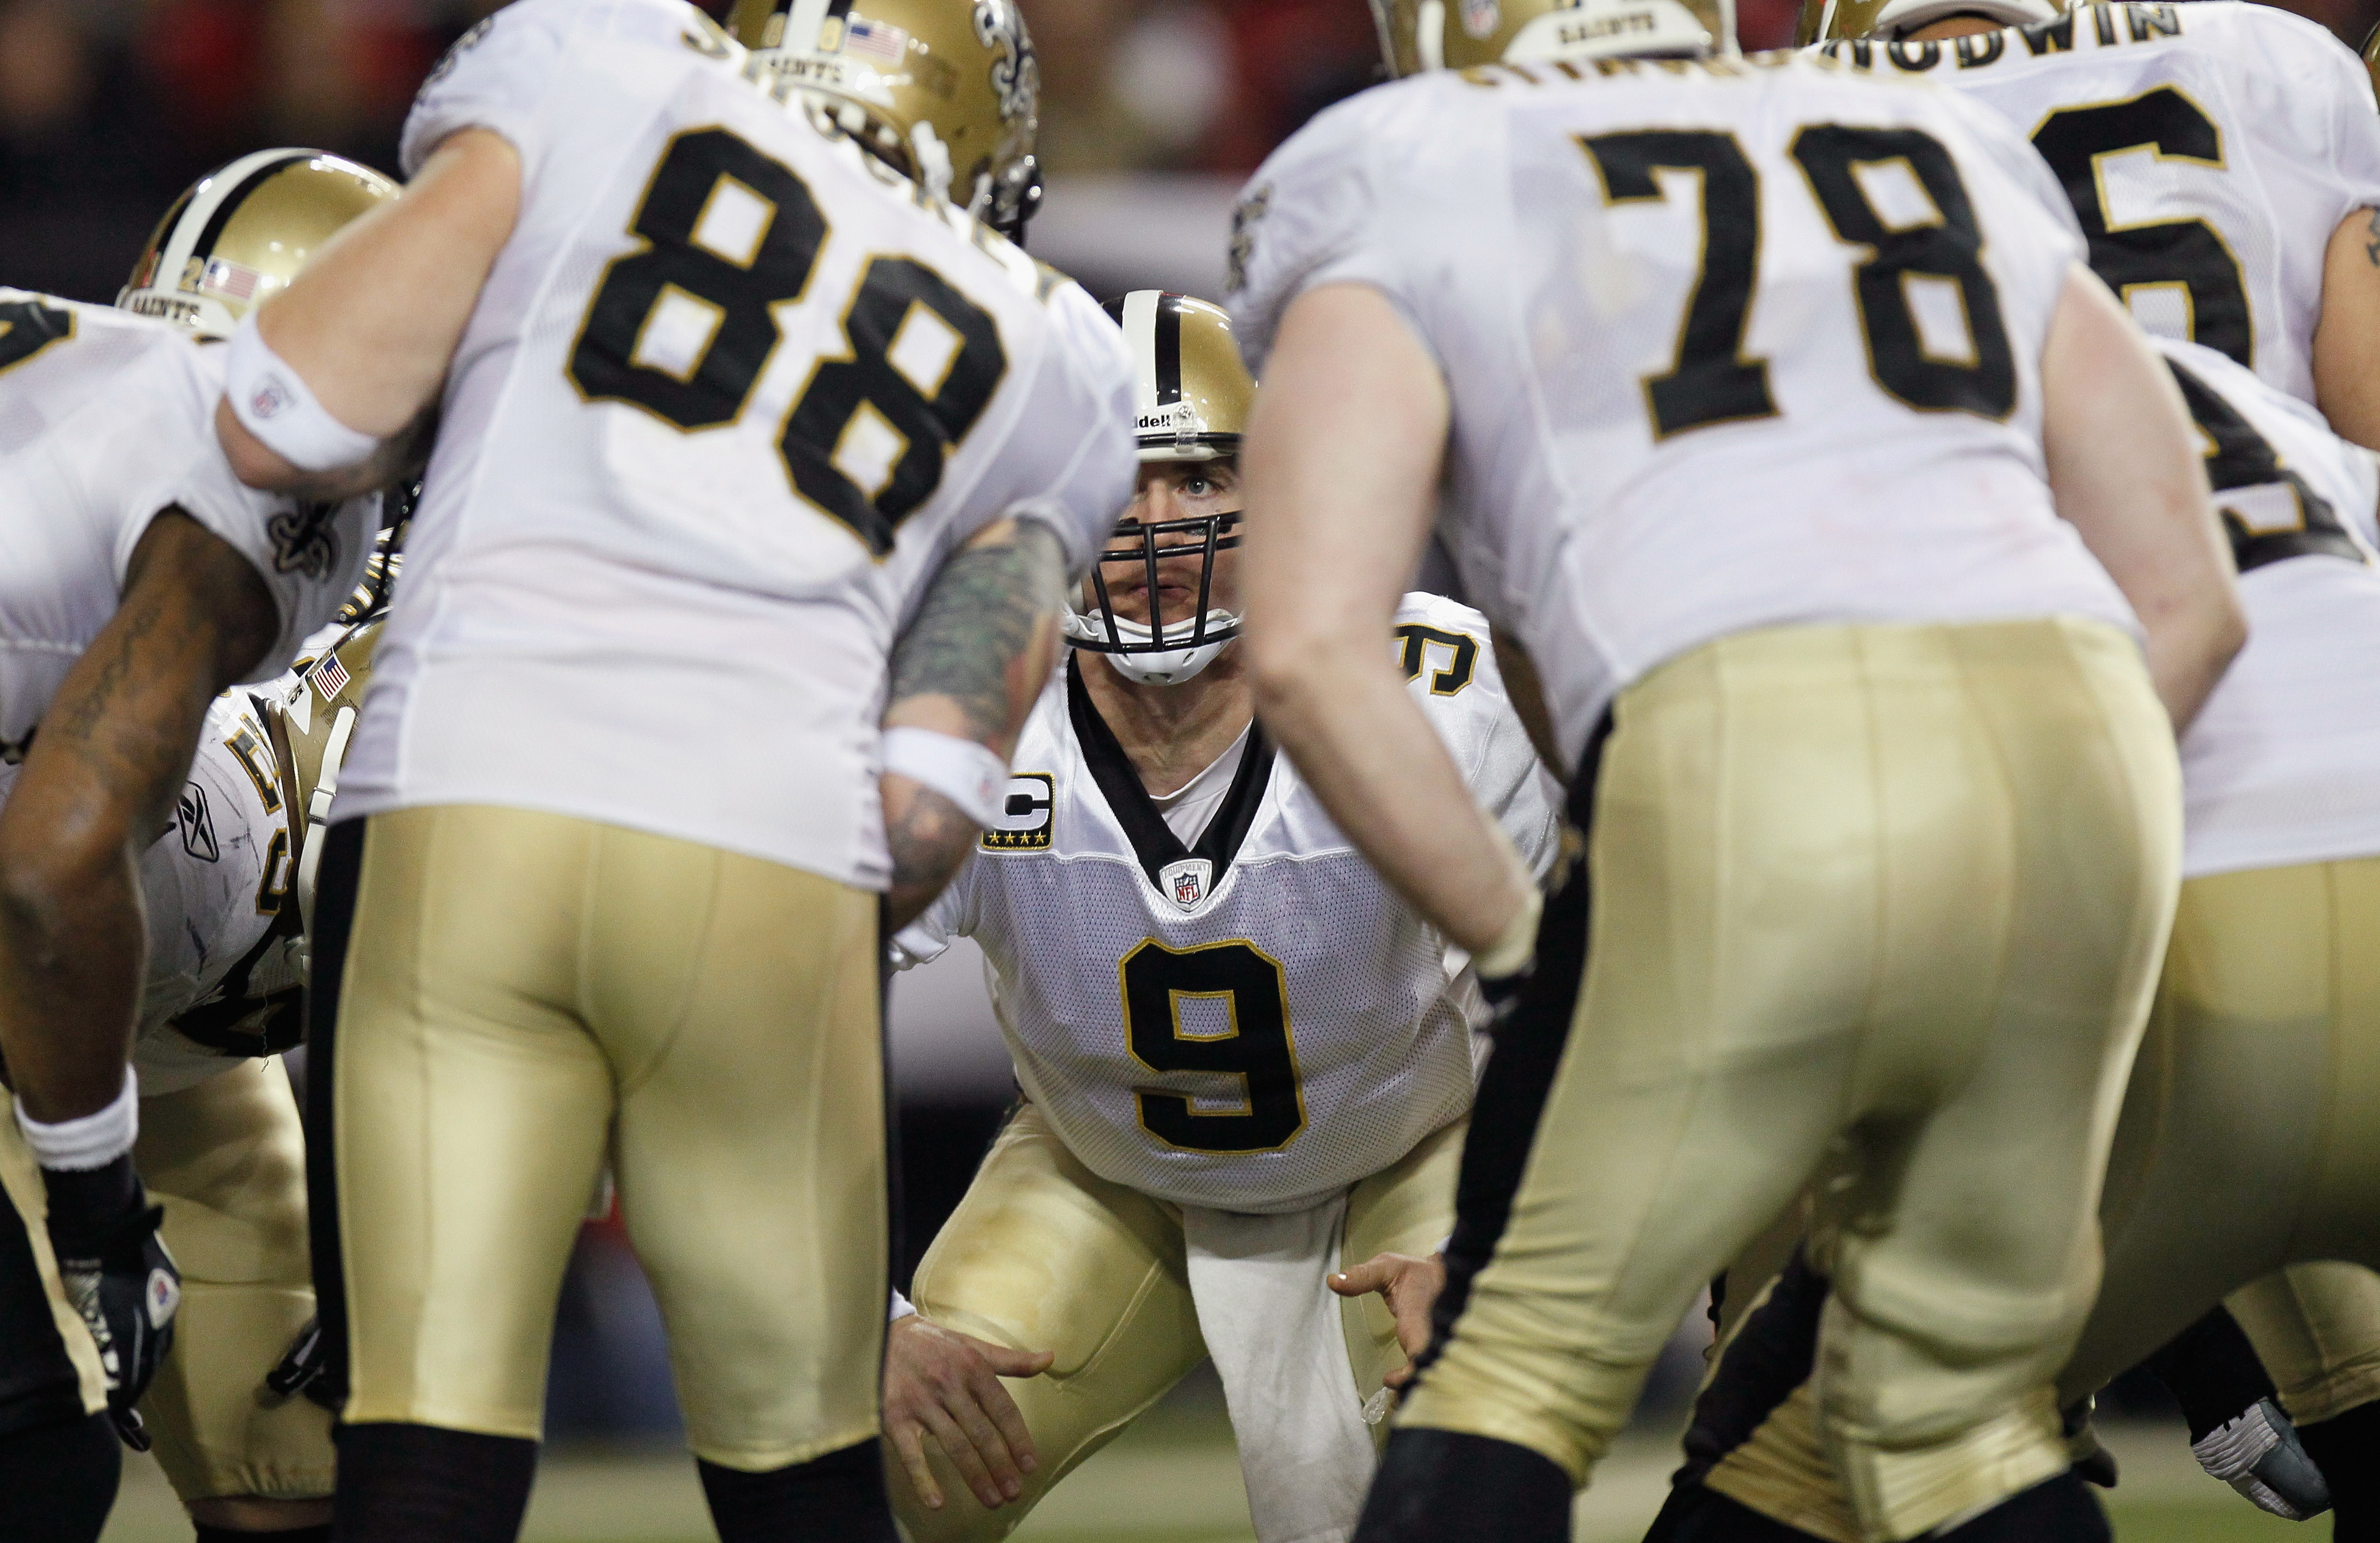 ATLANTA, GA - DECEMBER 27:  Quarterback Drew Brees #9 of the New Orleans Saints against the Atlanta Falcons at Georgia Dome on December 27, 2010 in Atlanta, Georgia.  (Photo by Kevin C. Cox/Getty Images)